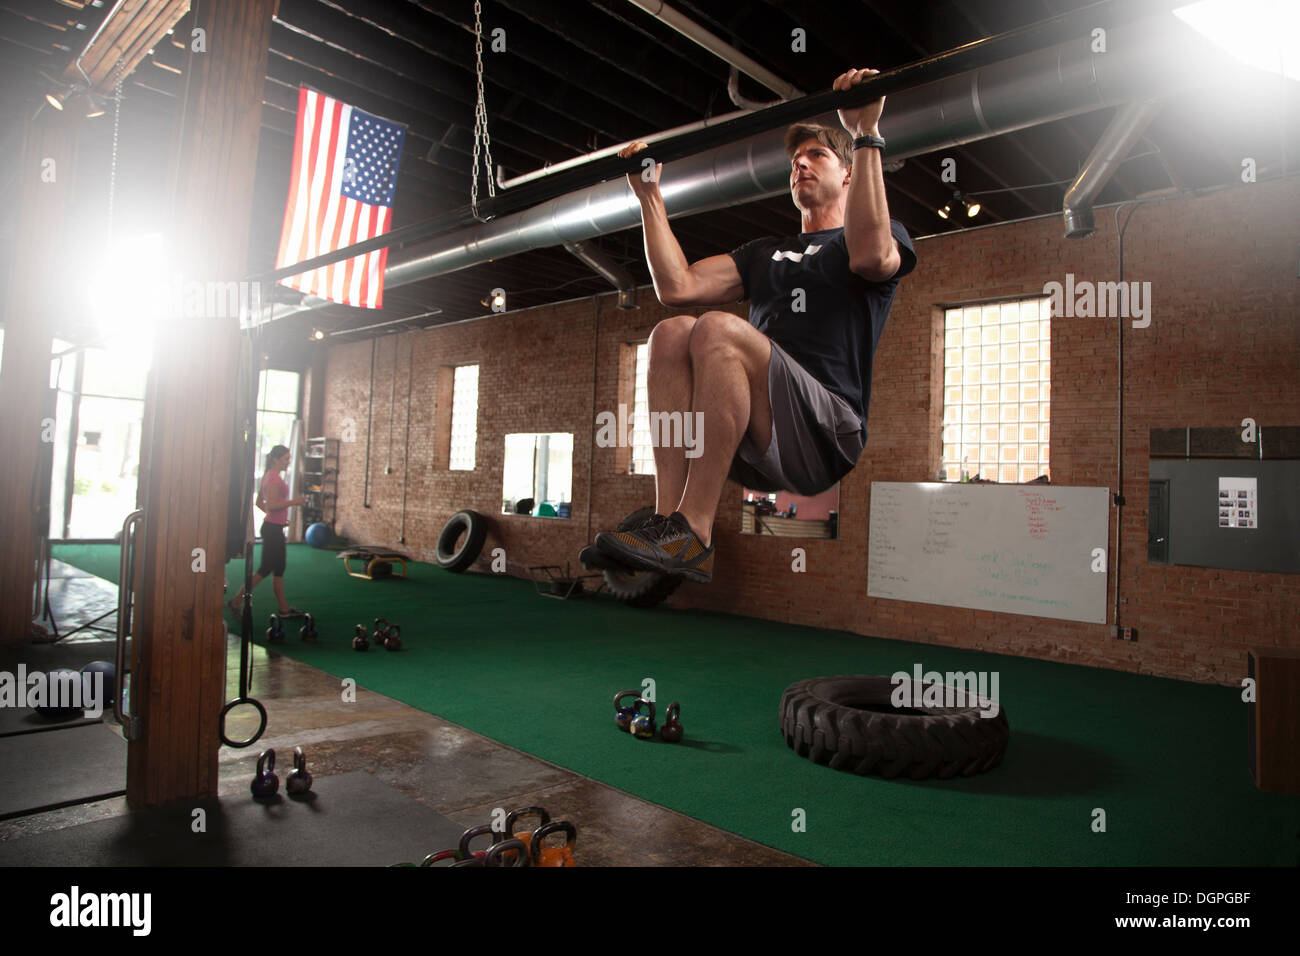 Bodybuilder doing pull up on bar in gym - Stock Image